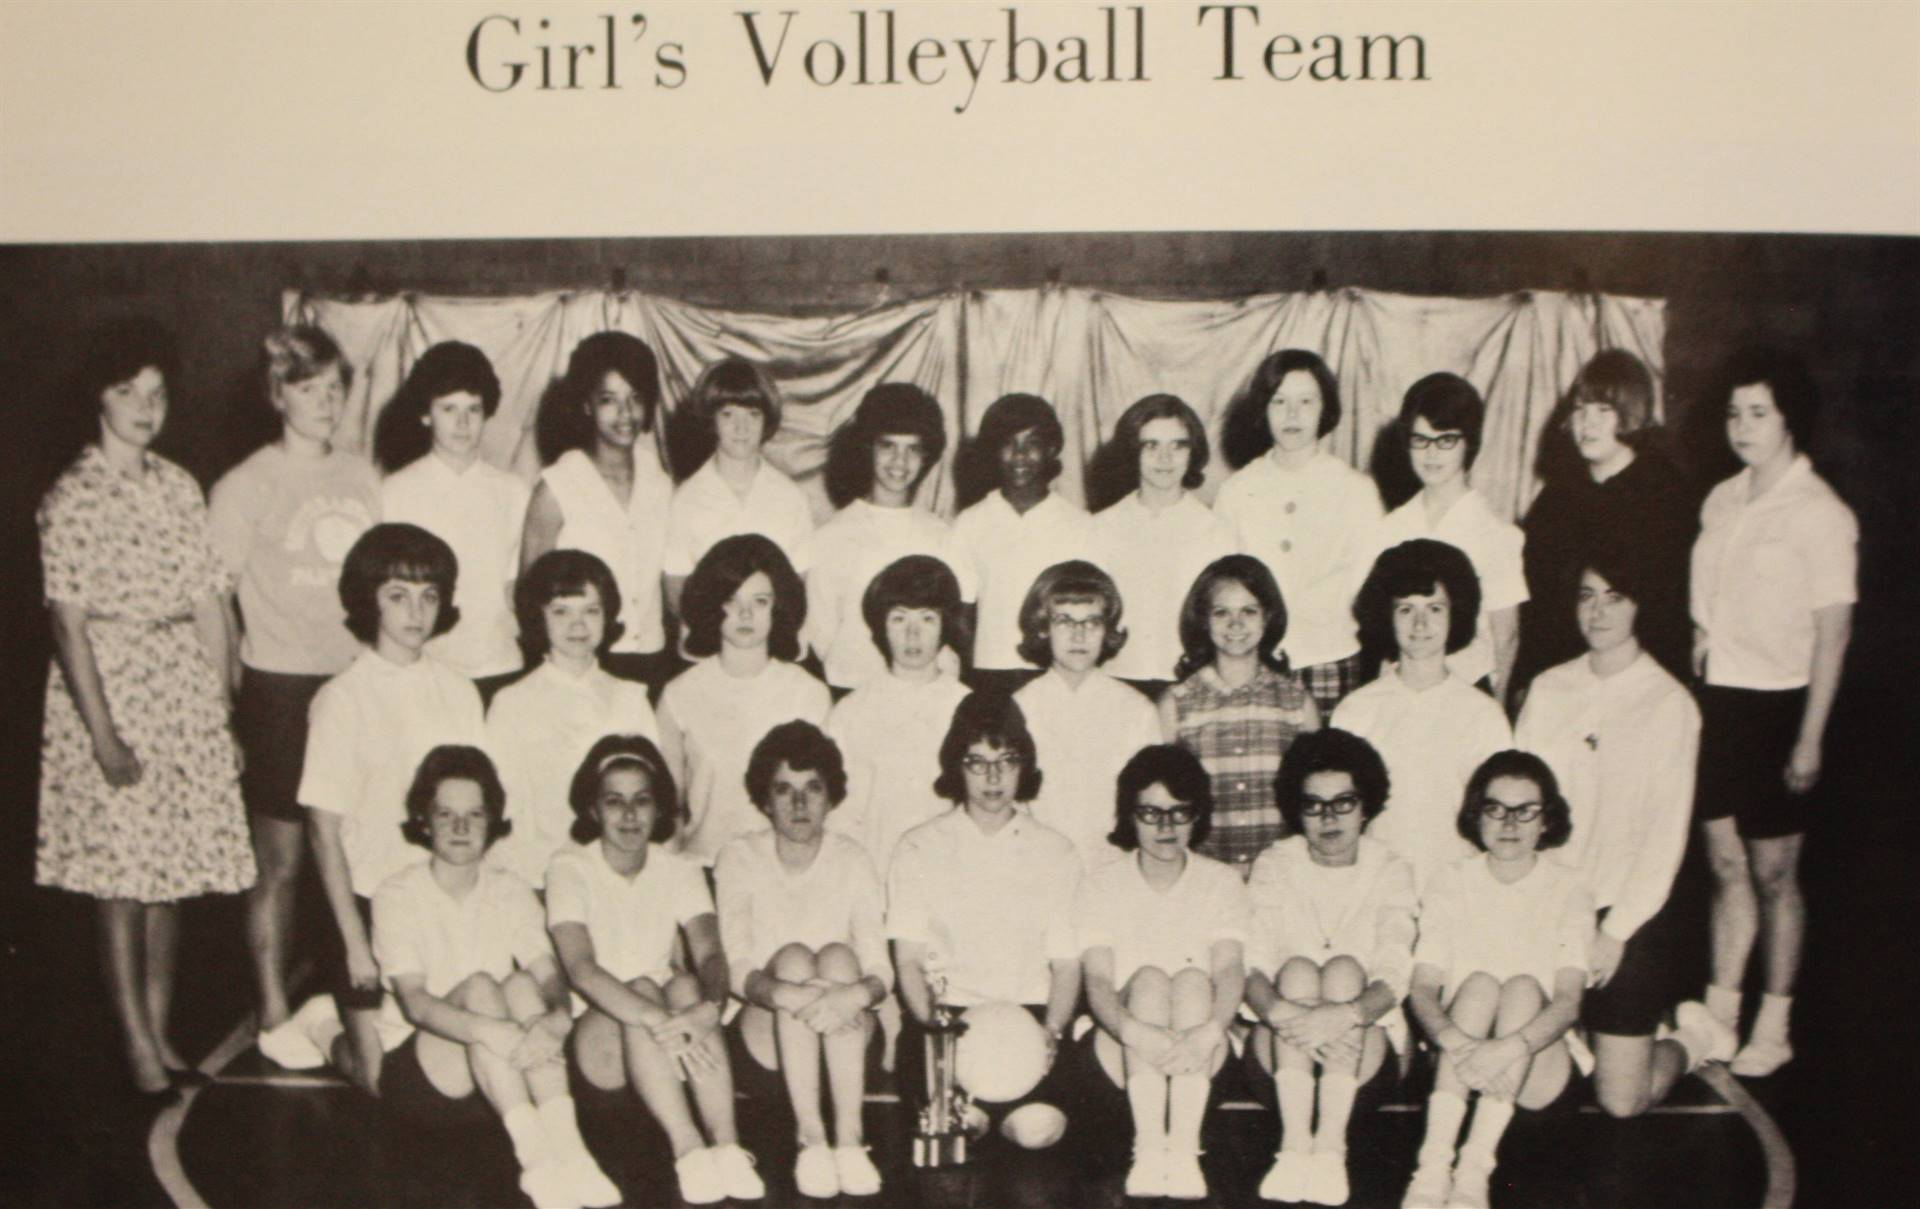 1966 Girl's Volleyball Team